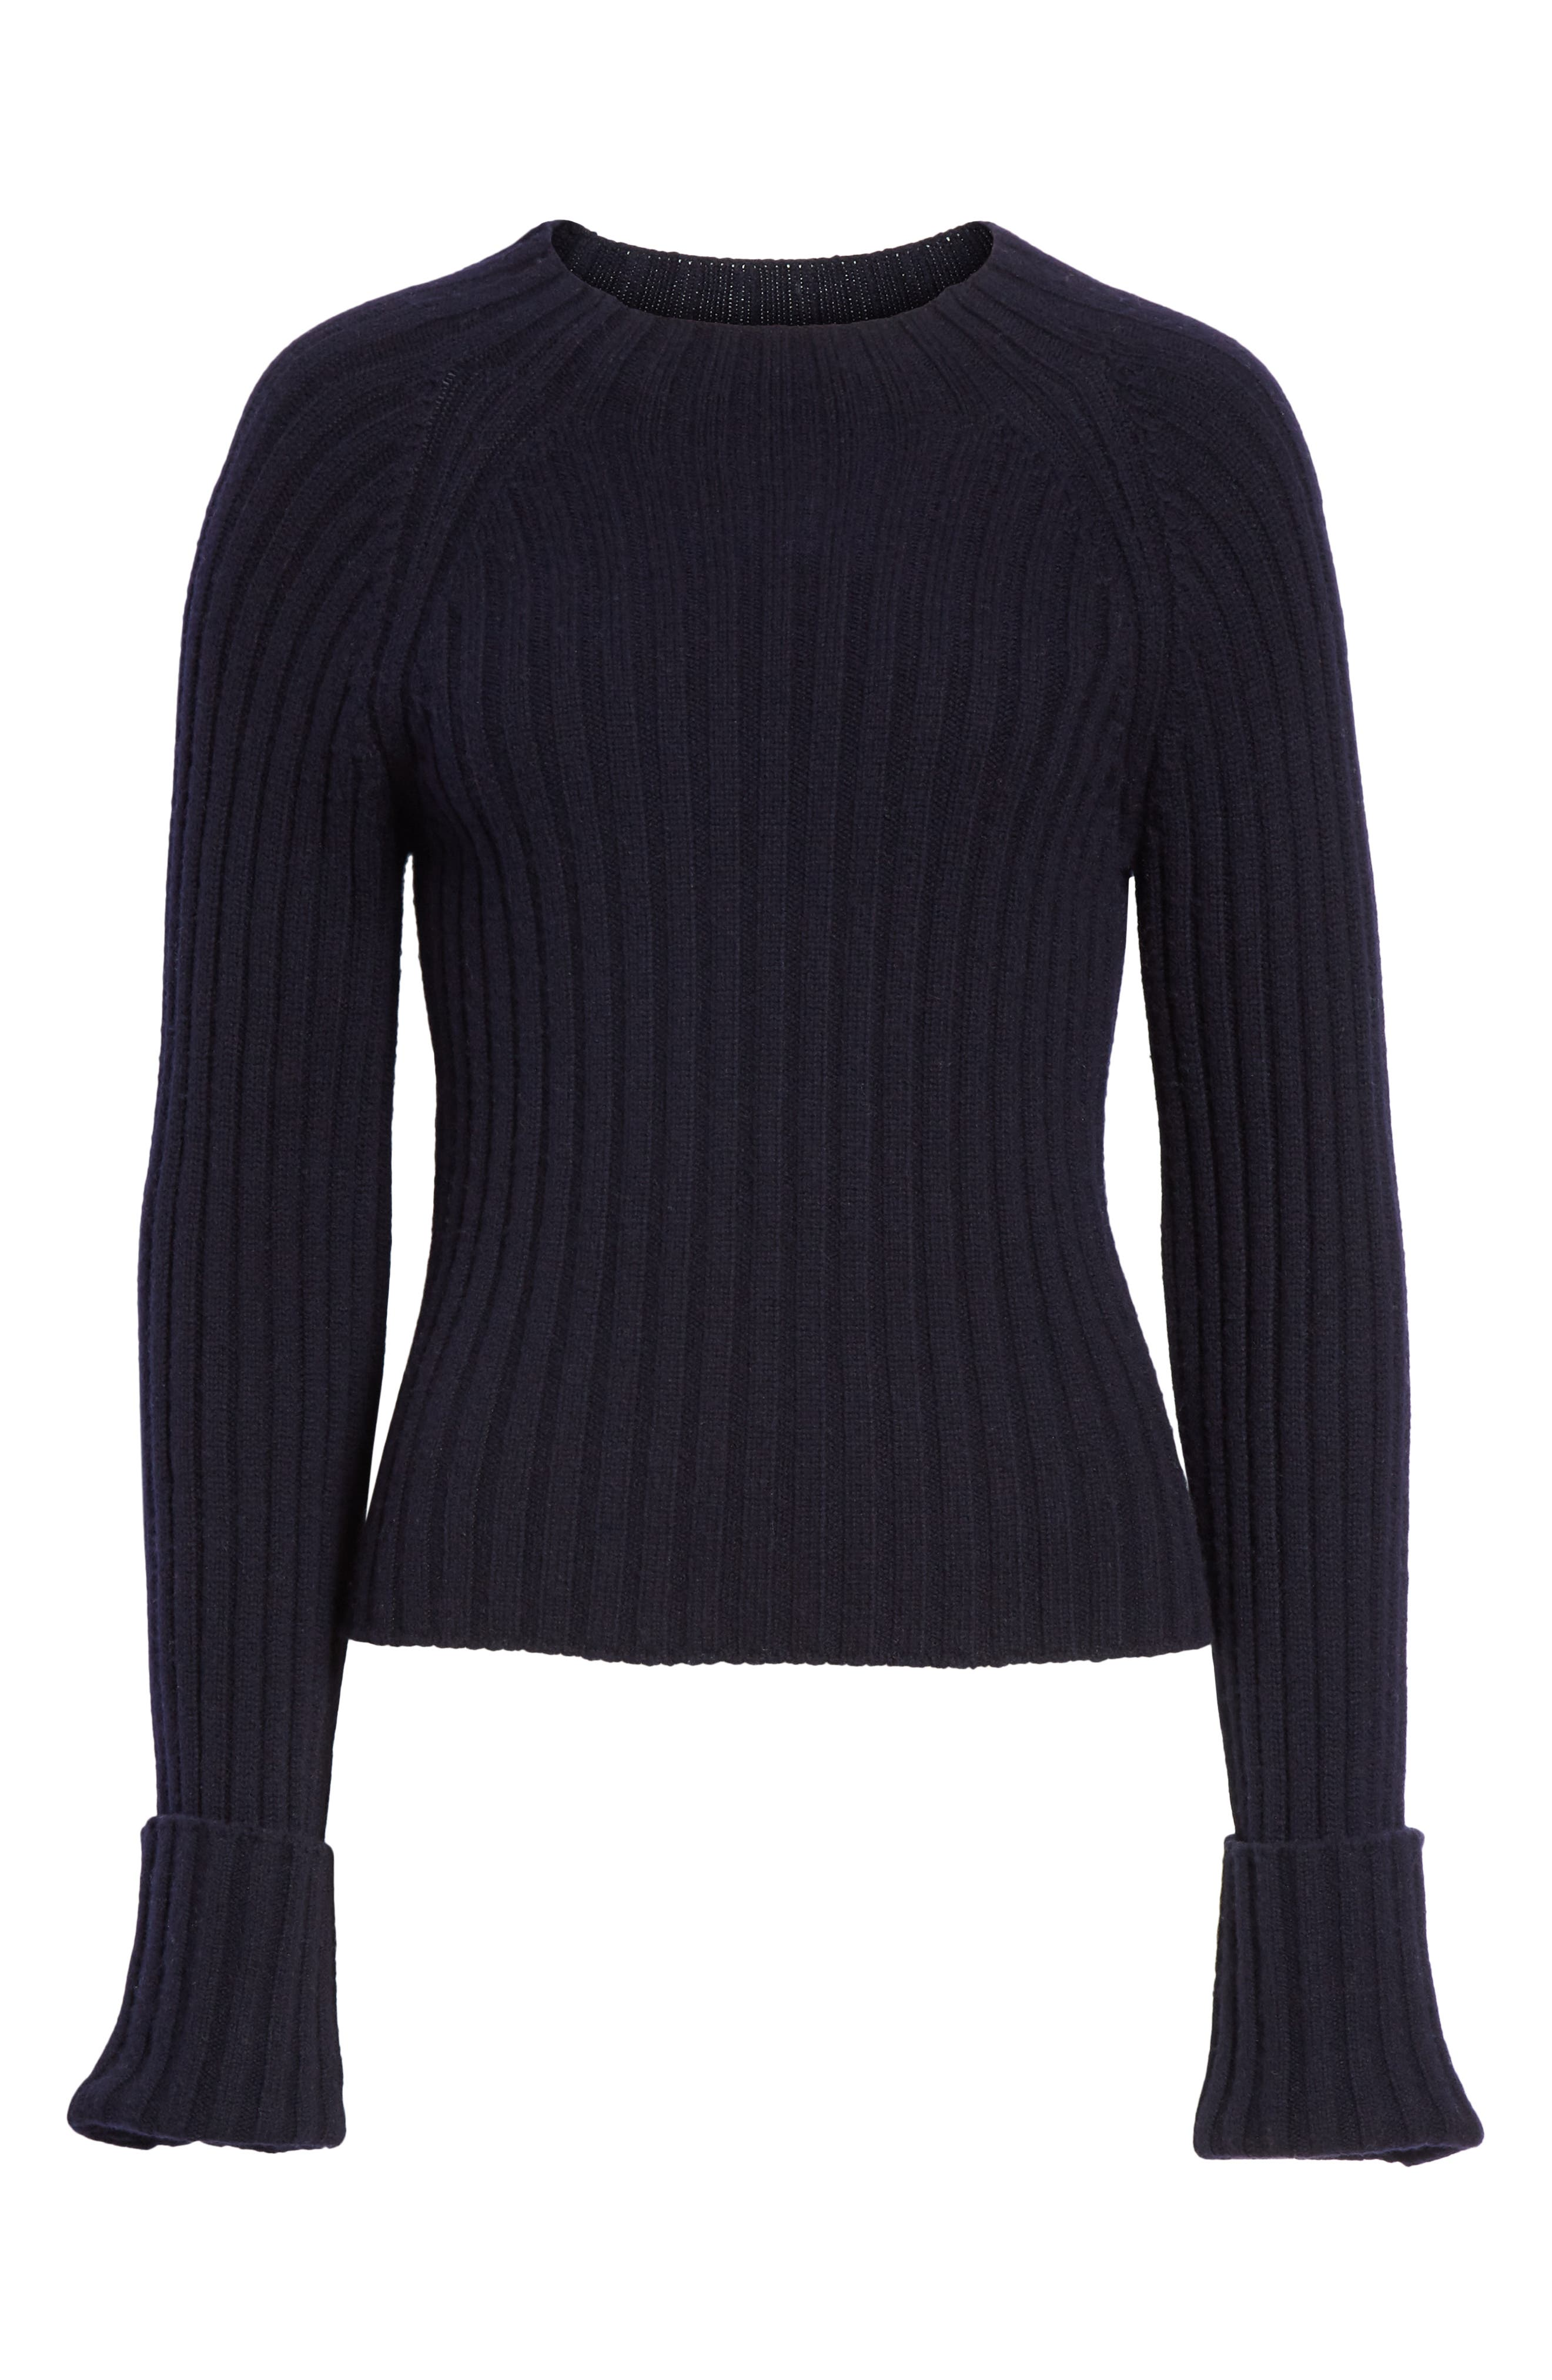 VINCE, Button Cuff Wool & Cashmere Sweater, Alternate thumbnail 6, color, 403